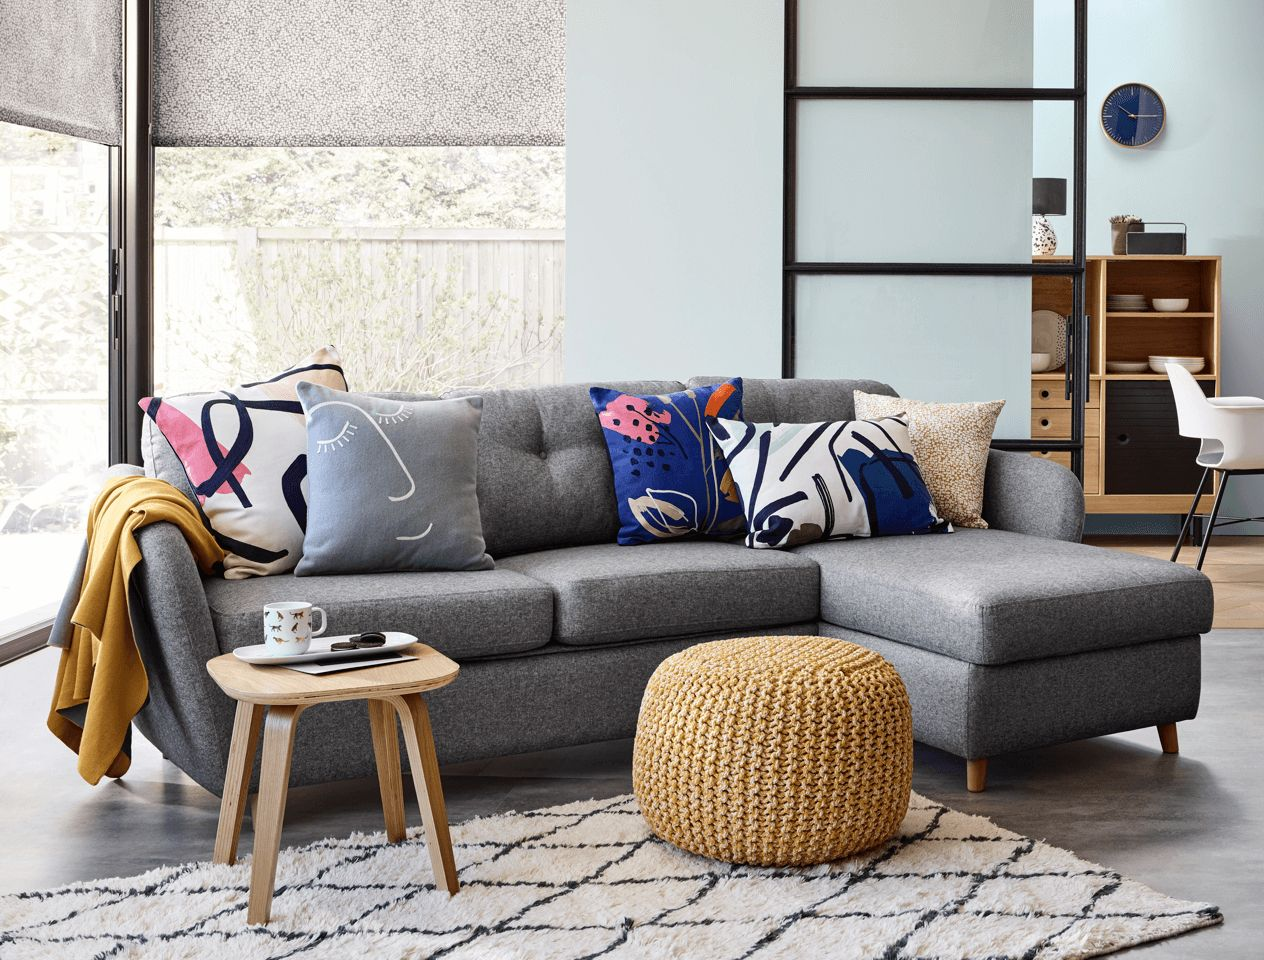 The Subtle Art Of How To Dress A Sofa With Cushions And Throws